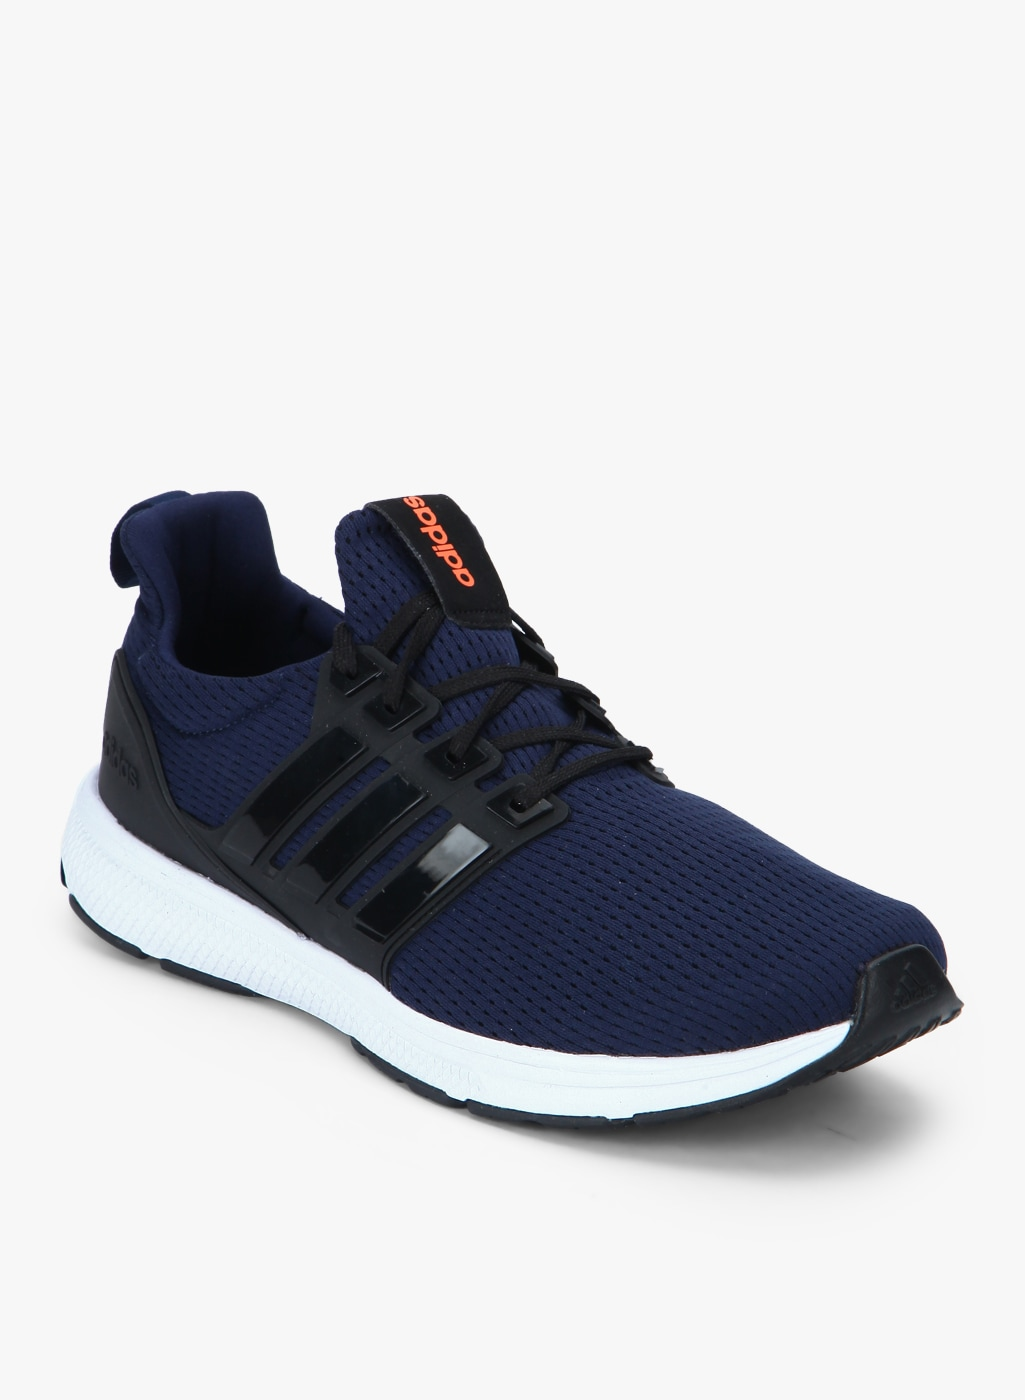 Adidas: Buy Adidas Shoes and Sports Accessories for men